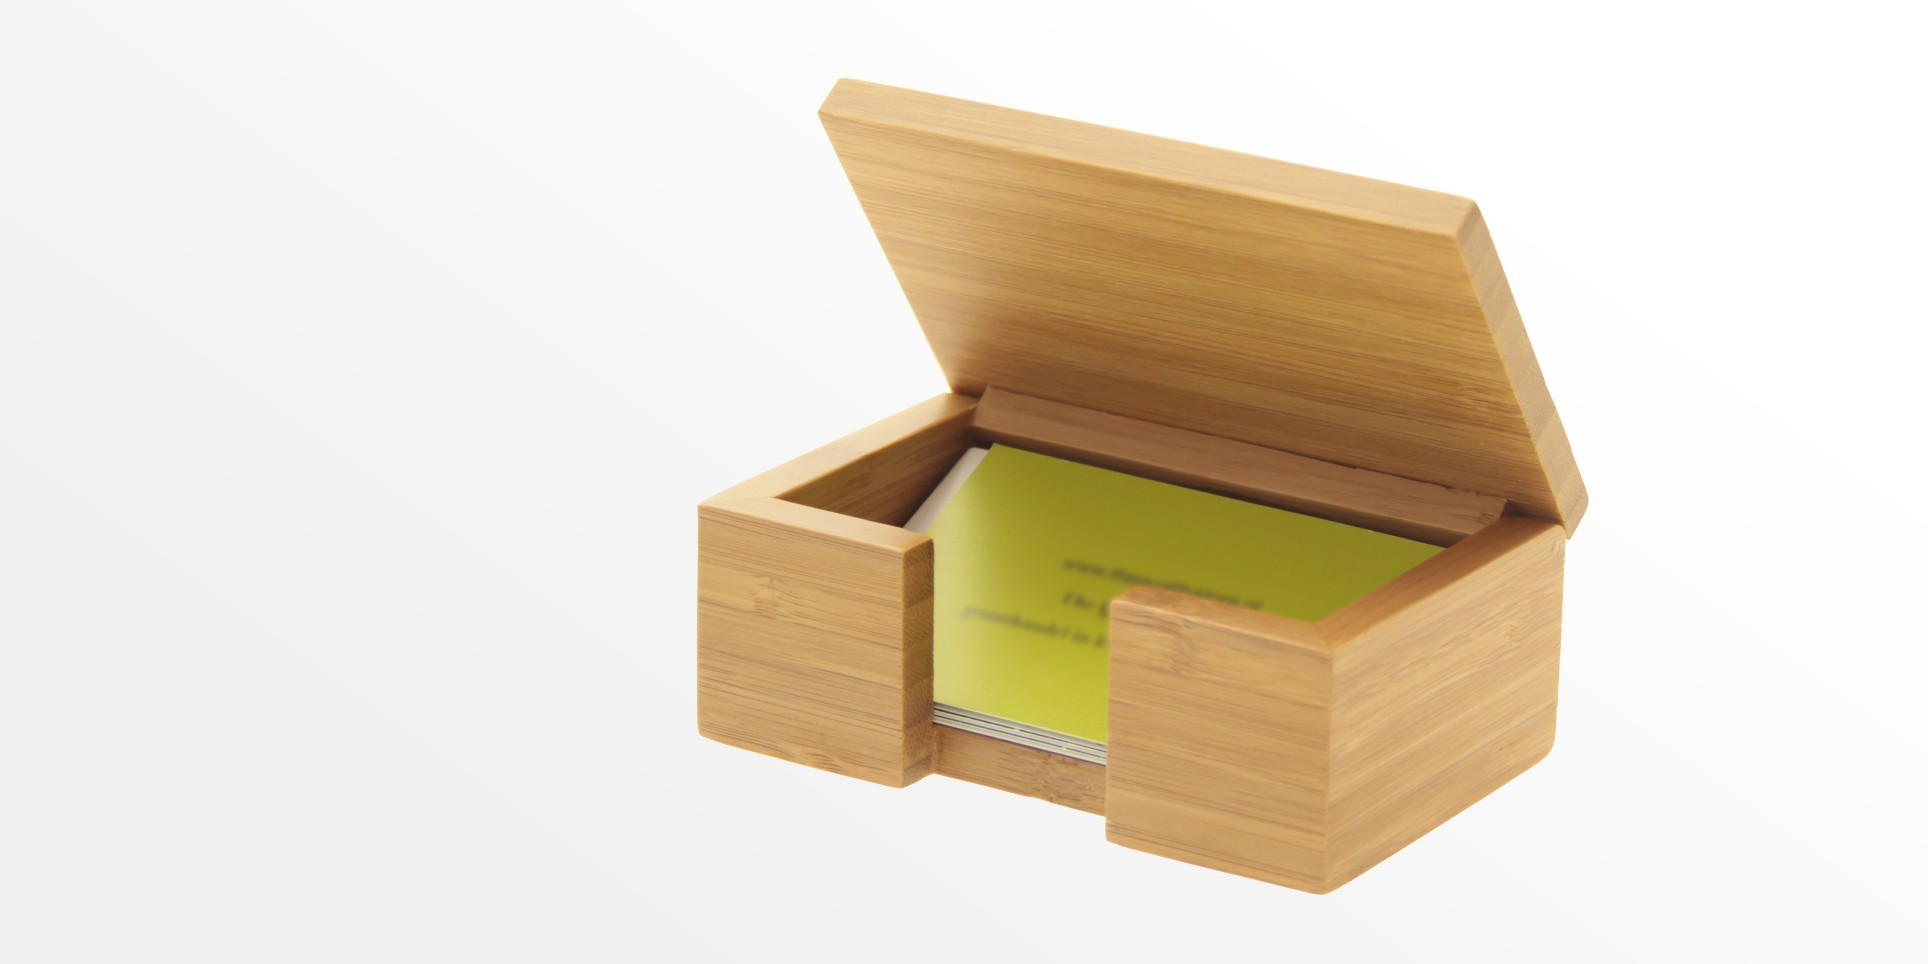 Bamboo card box business card holder office supplies for Bamboo business card holder